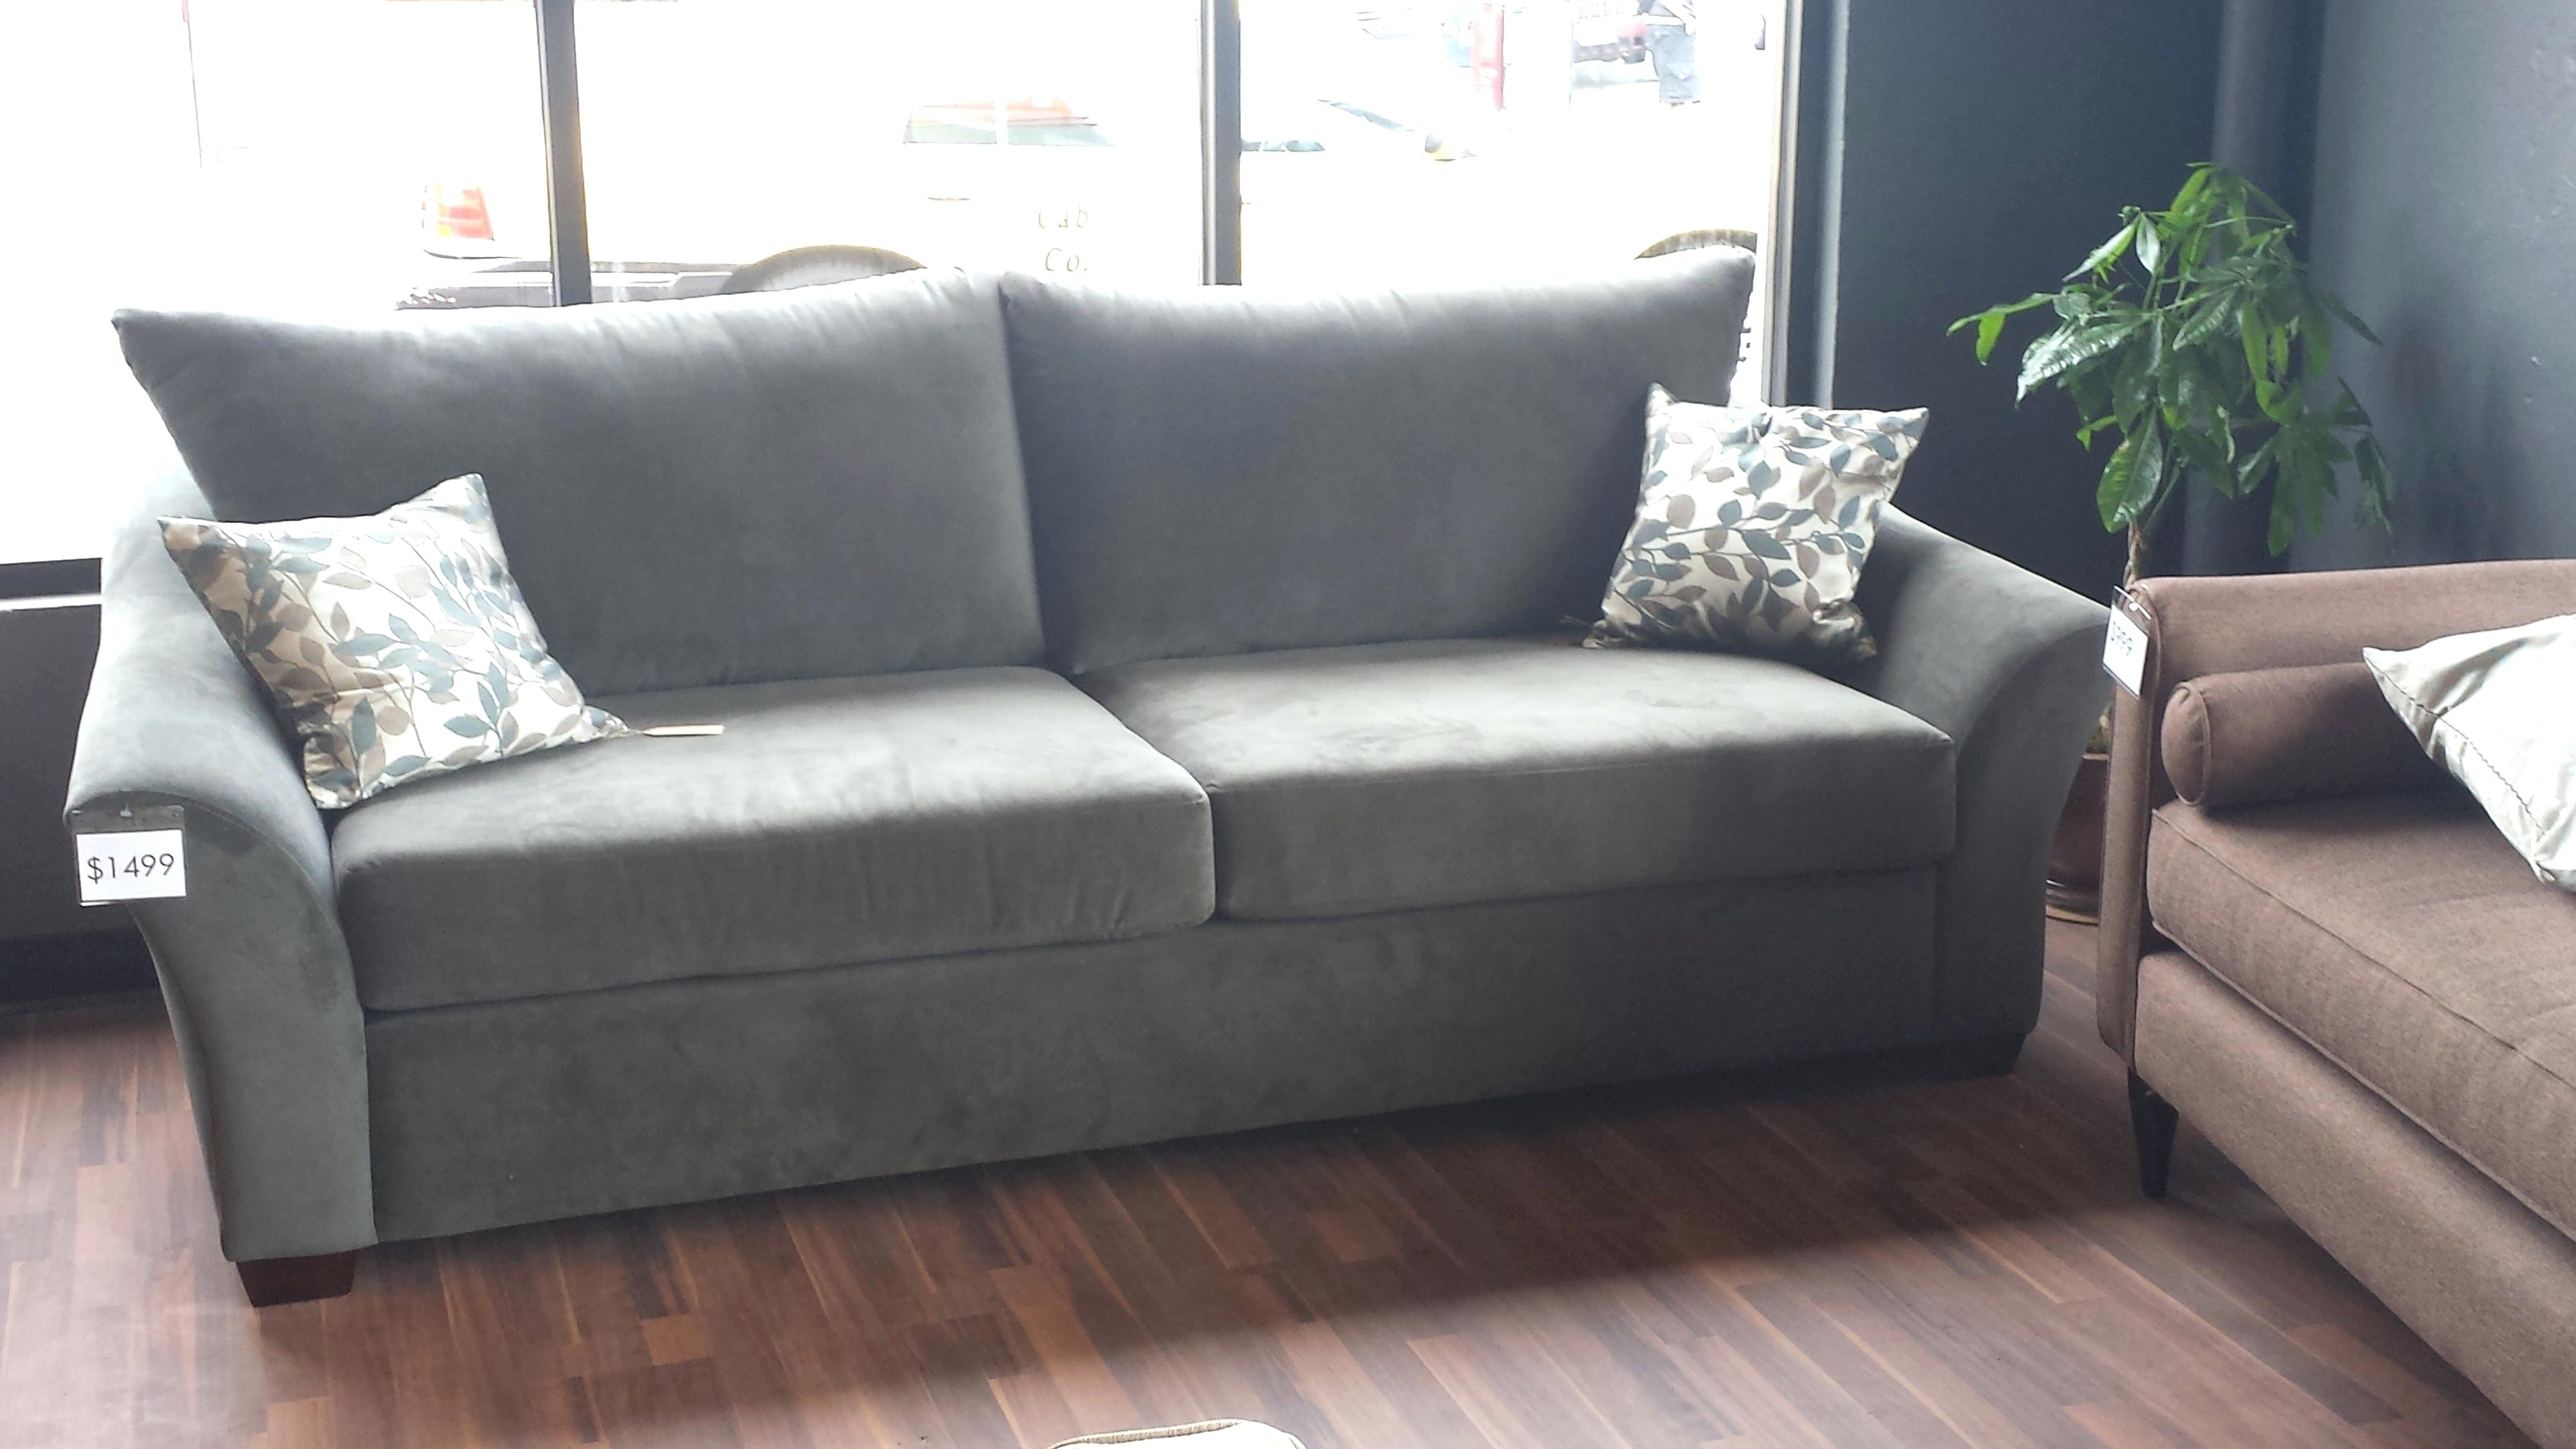 Deep Sectional Couch Sas Sa Sofas For Sale Sofa Canada Cushion with Deep Cushion Sofas (Image 6 of 10)